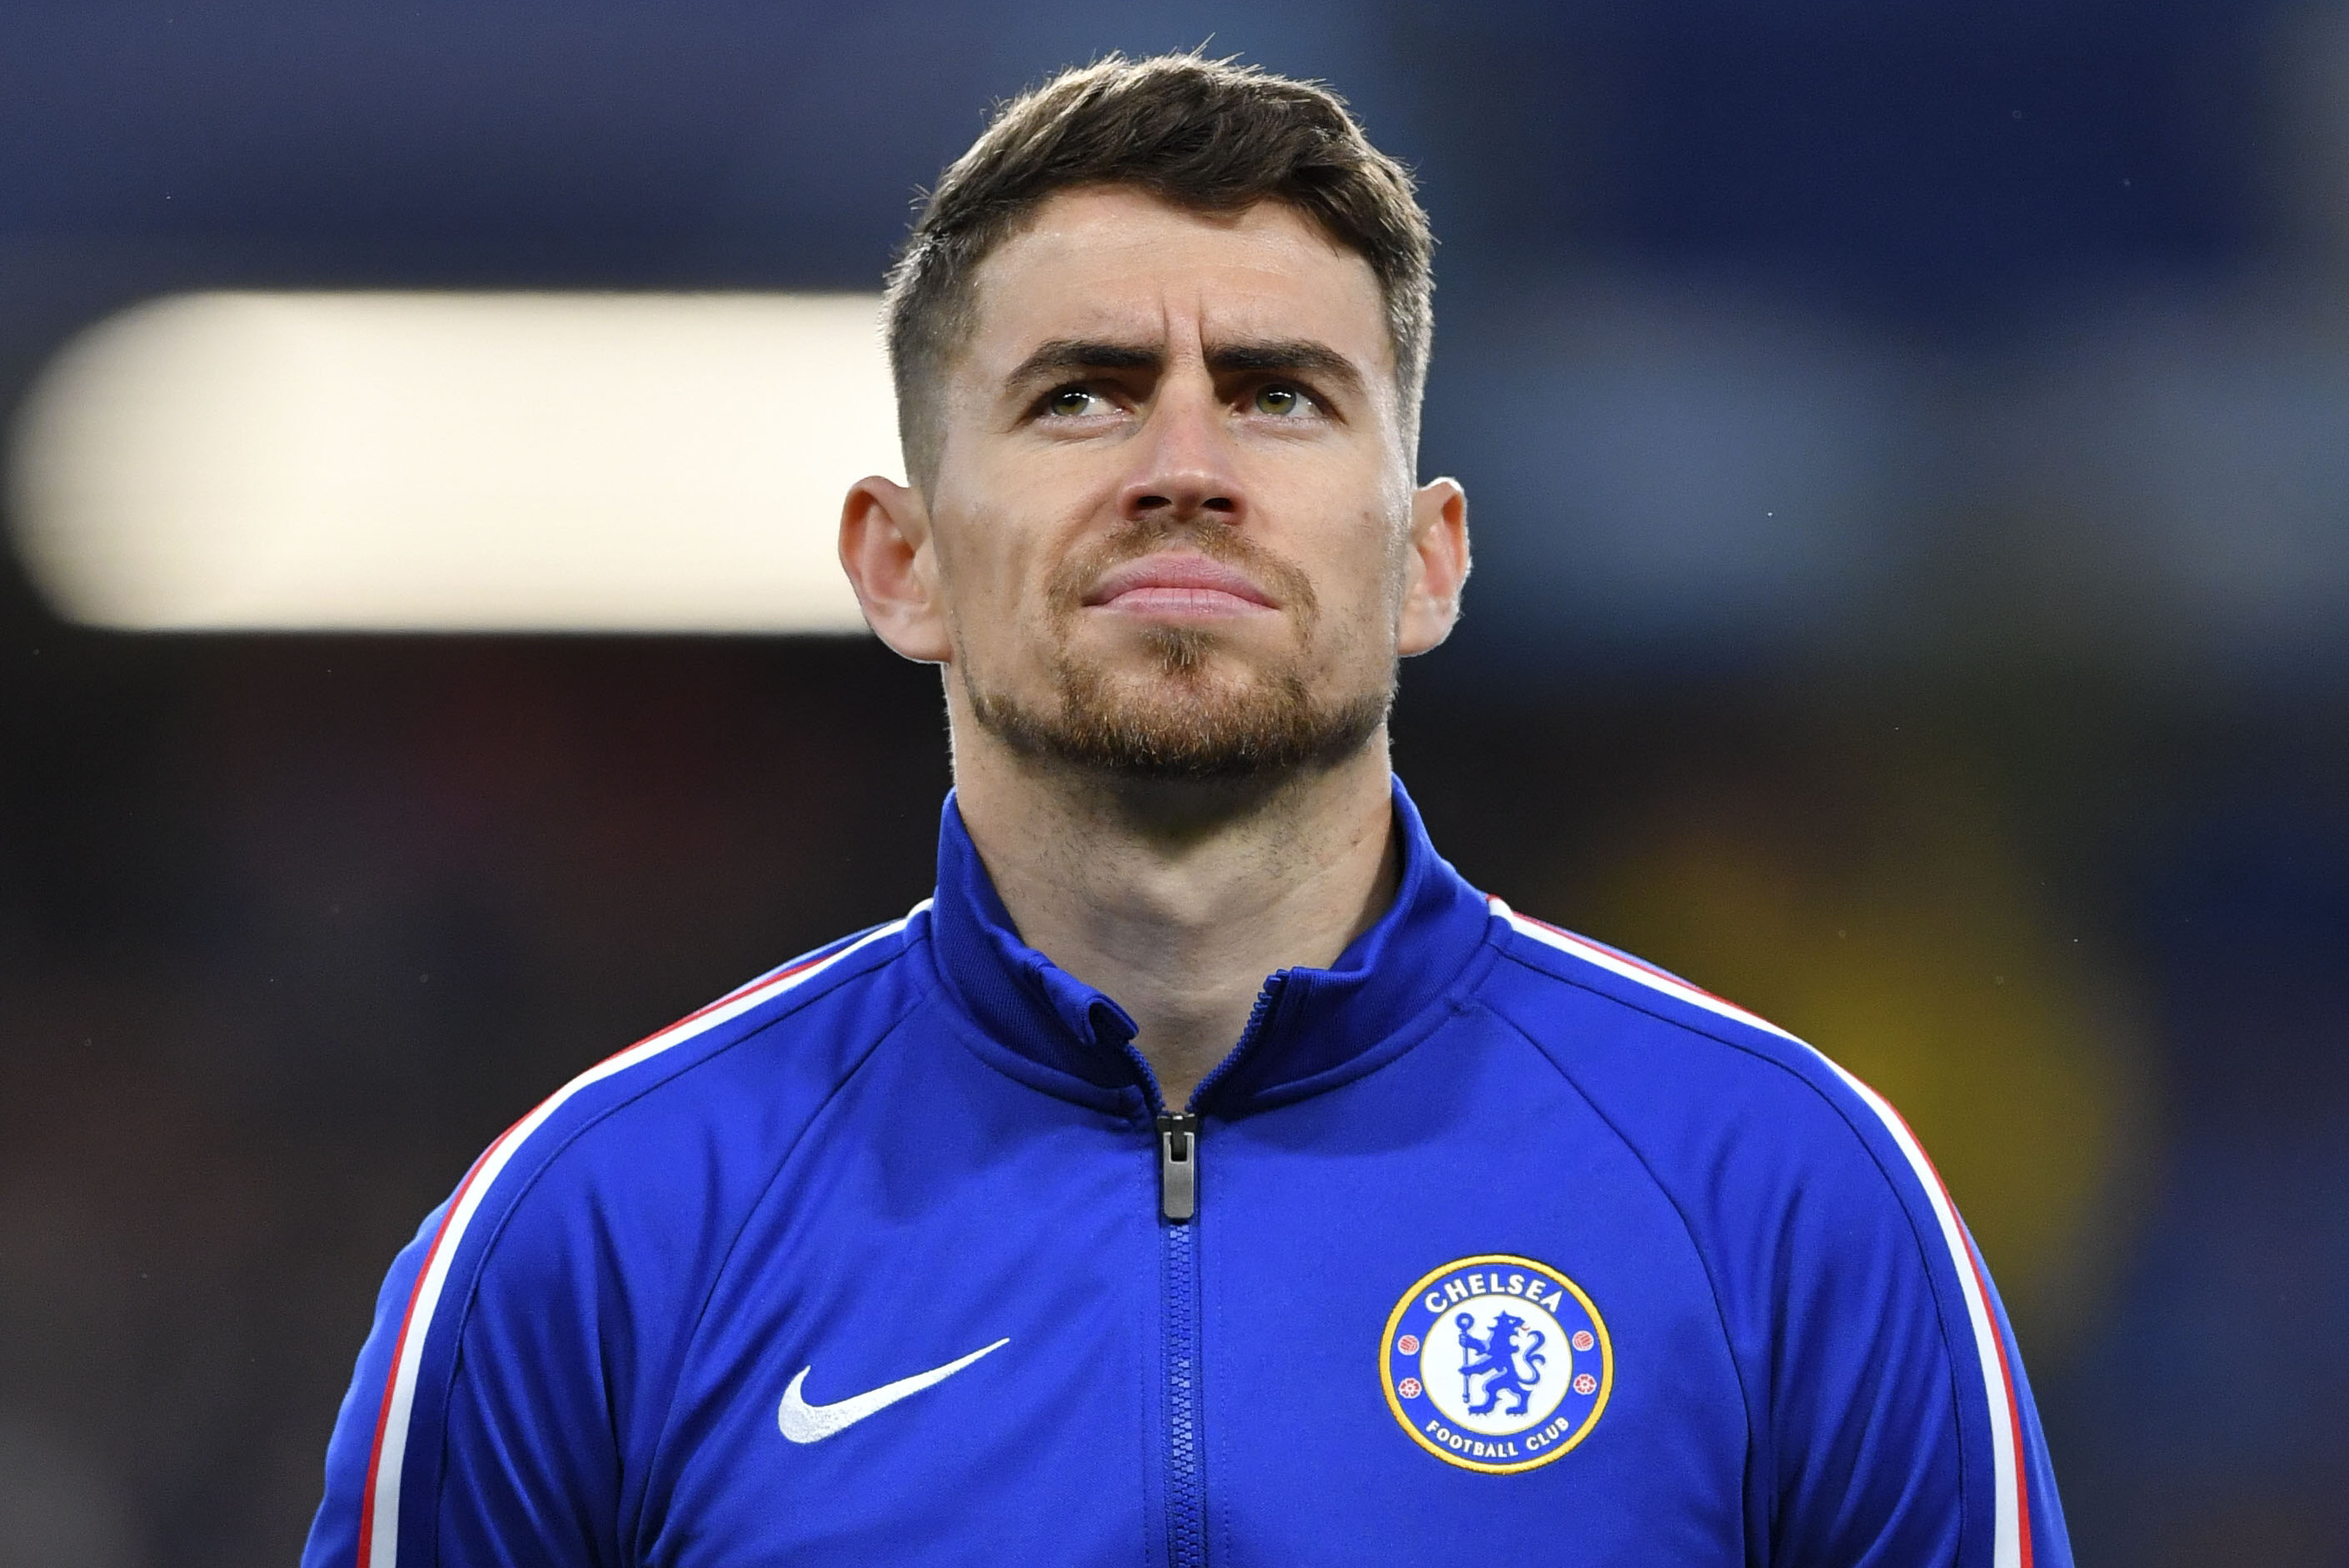 Jorginho on Chelsea Fans: 'I'm Happy They Are Seeing Me in a Different  Light'   Bleacher Report   Latest News, Videos and Highlights